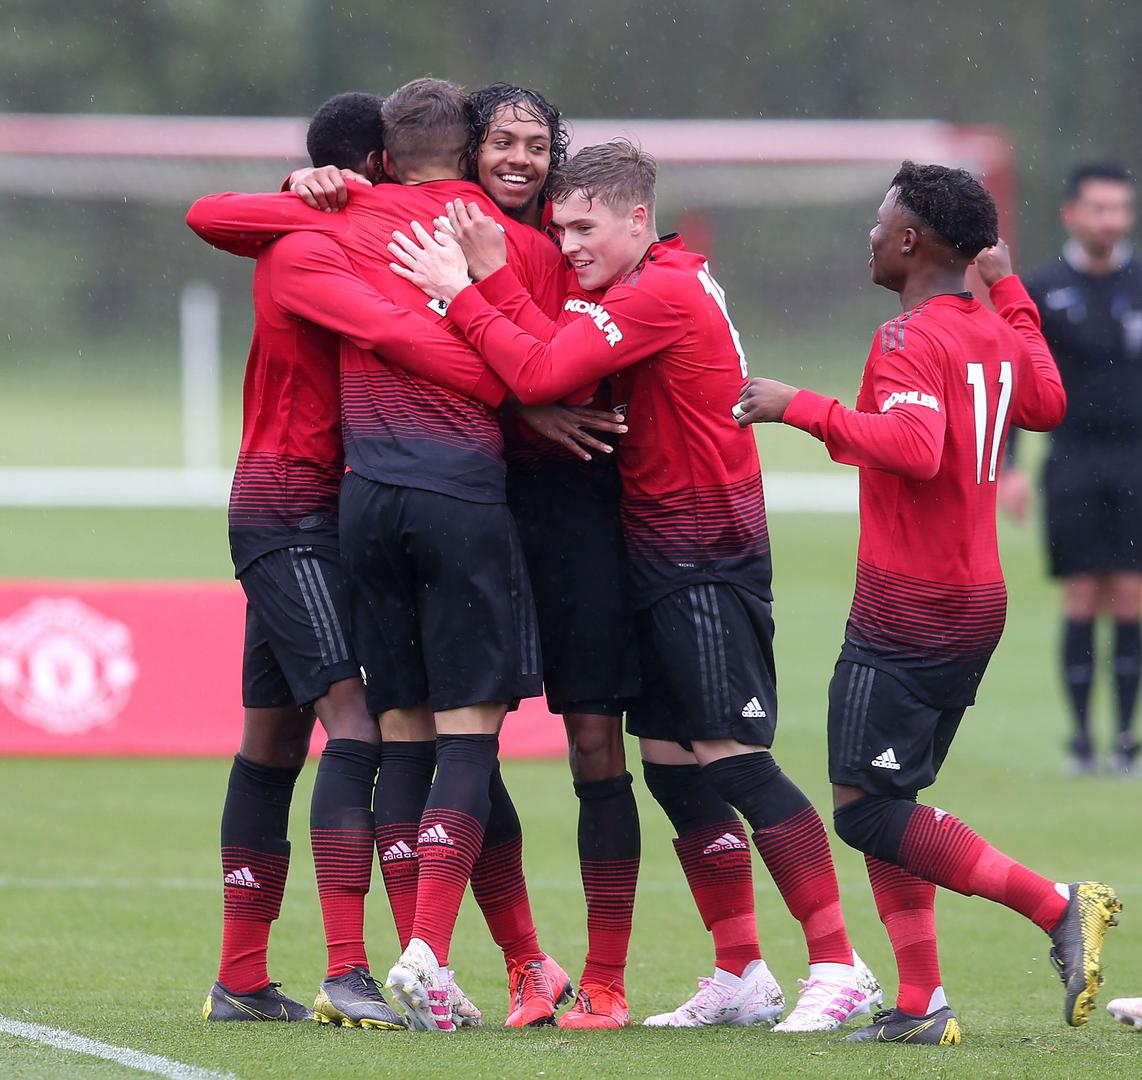 United's Under-18s celebrate a goal against Everton.